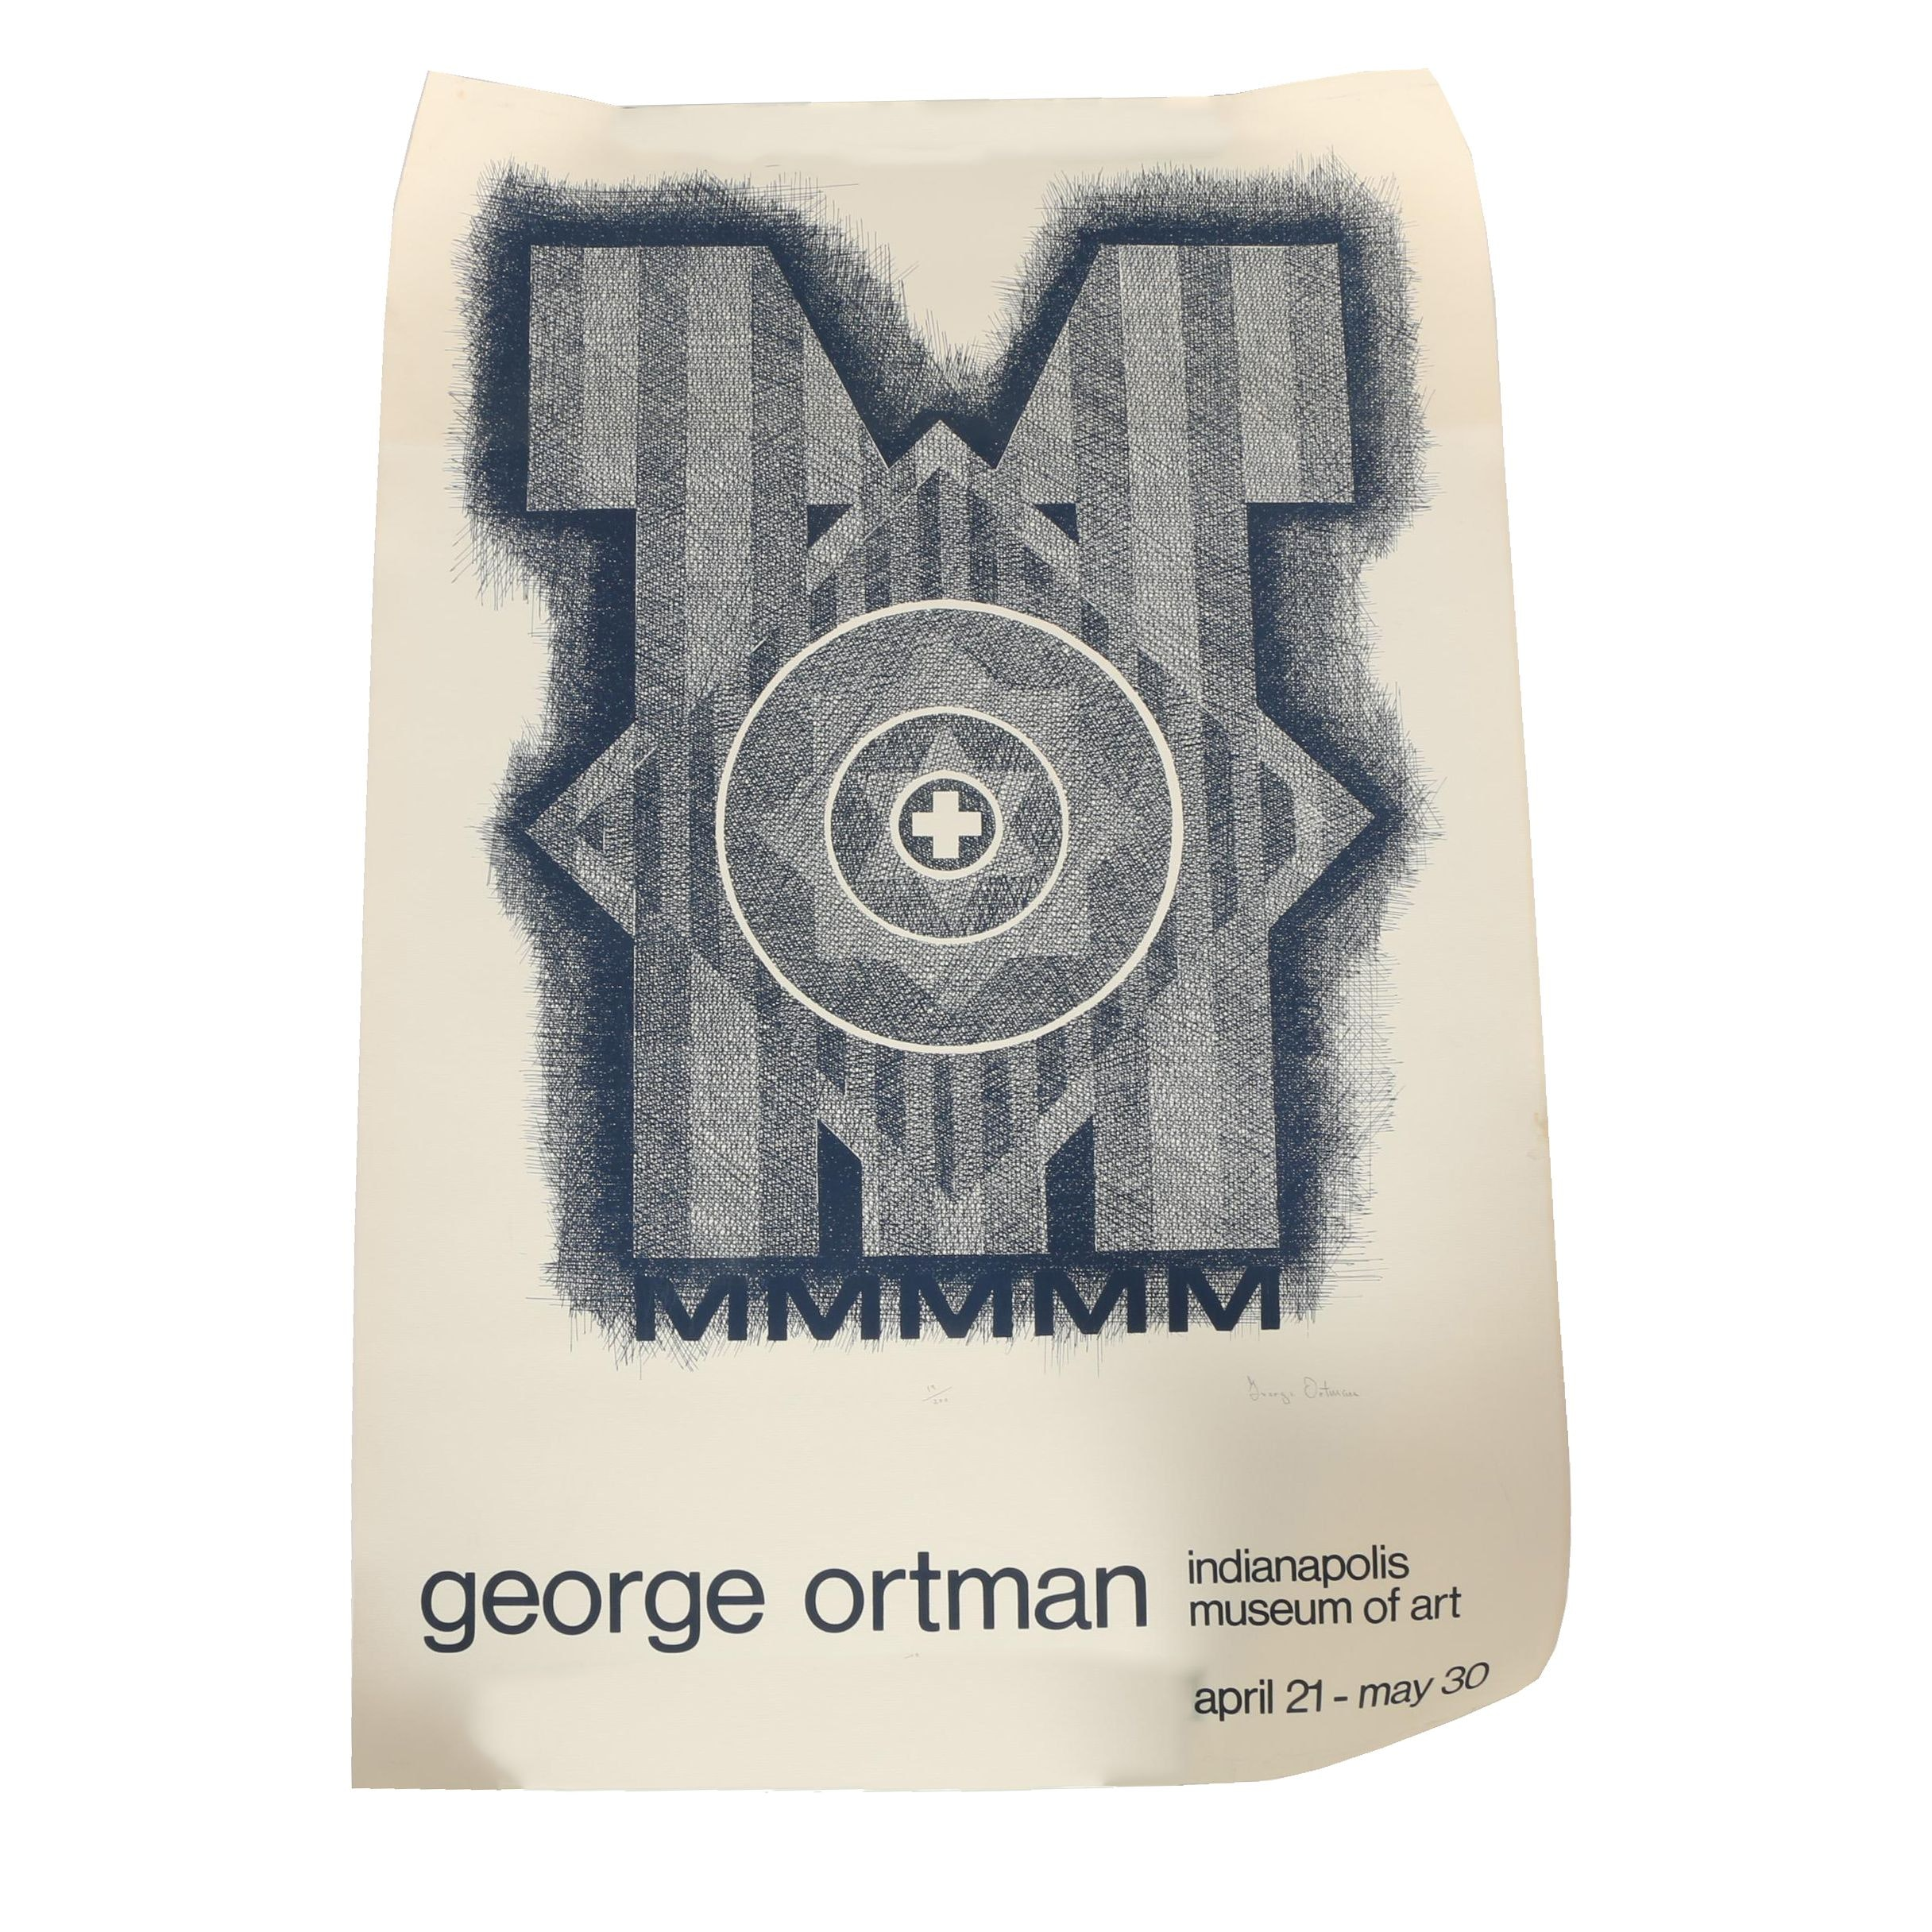 Signed Serigraph Exhibition Poster after George Ortman